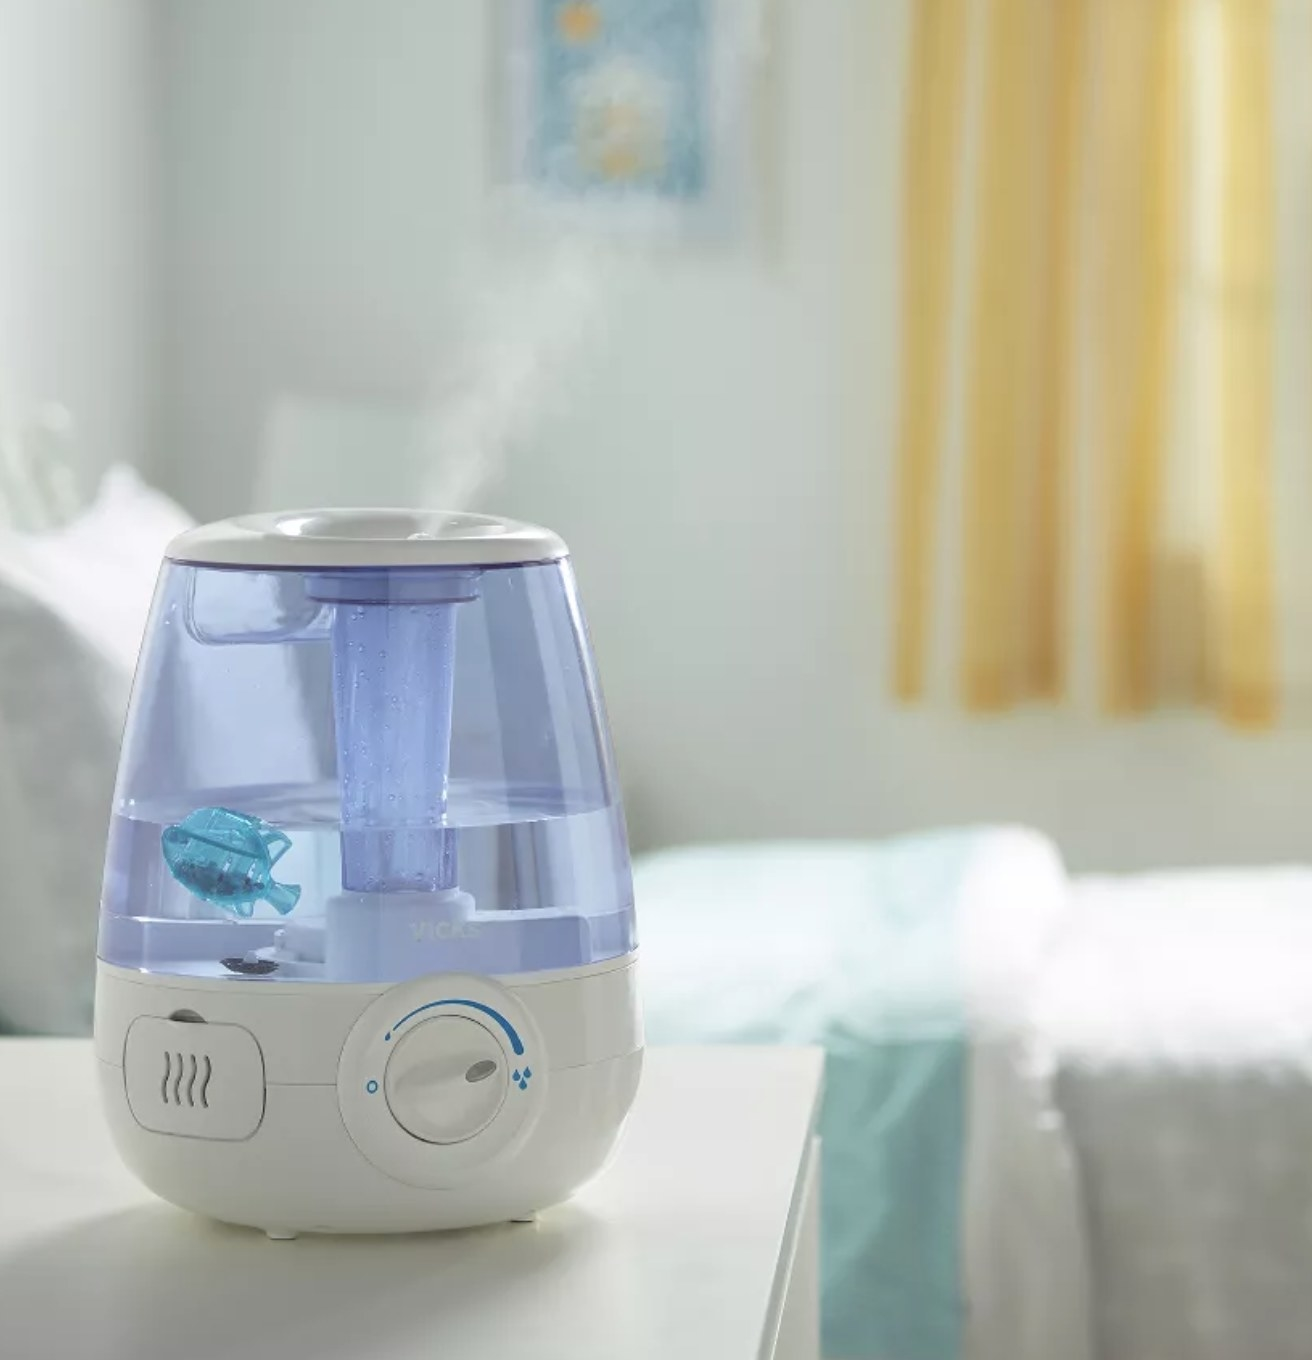 a blue and white humidifier in a bedroom